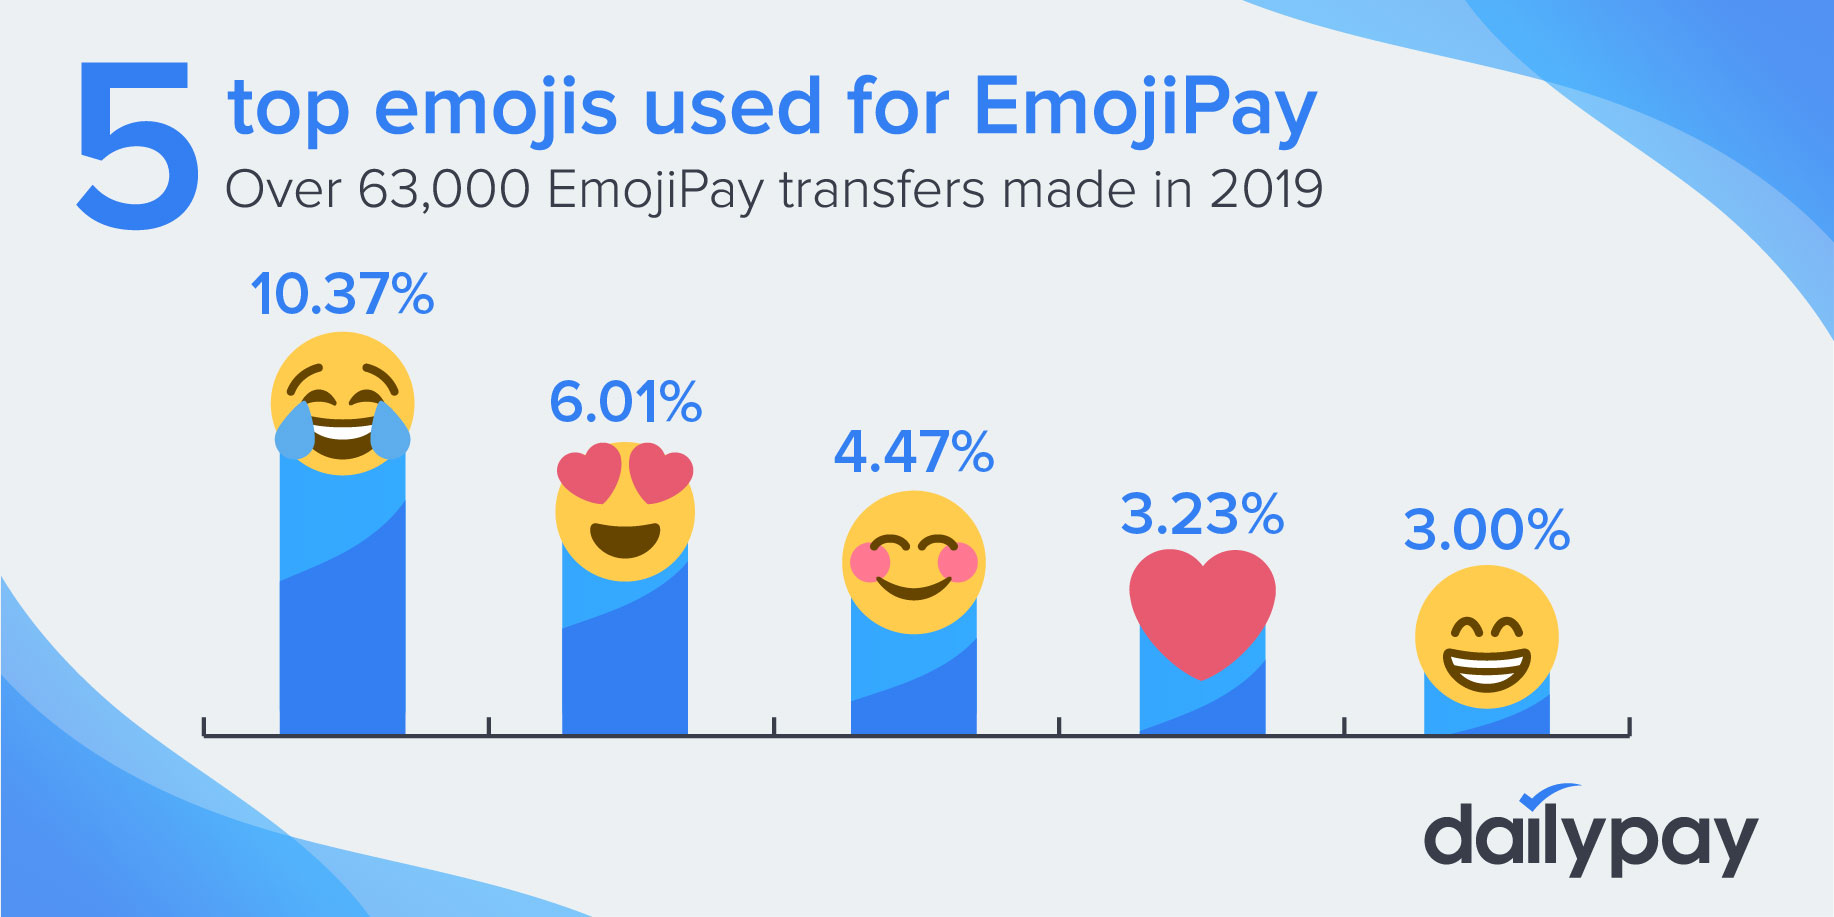 The top five emojis used on the DailyPay platform for on-demand pay.